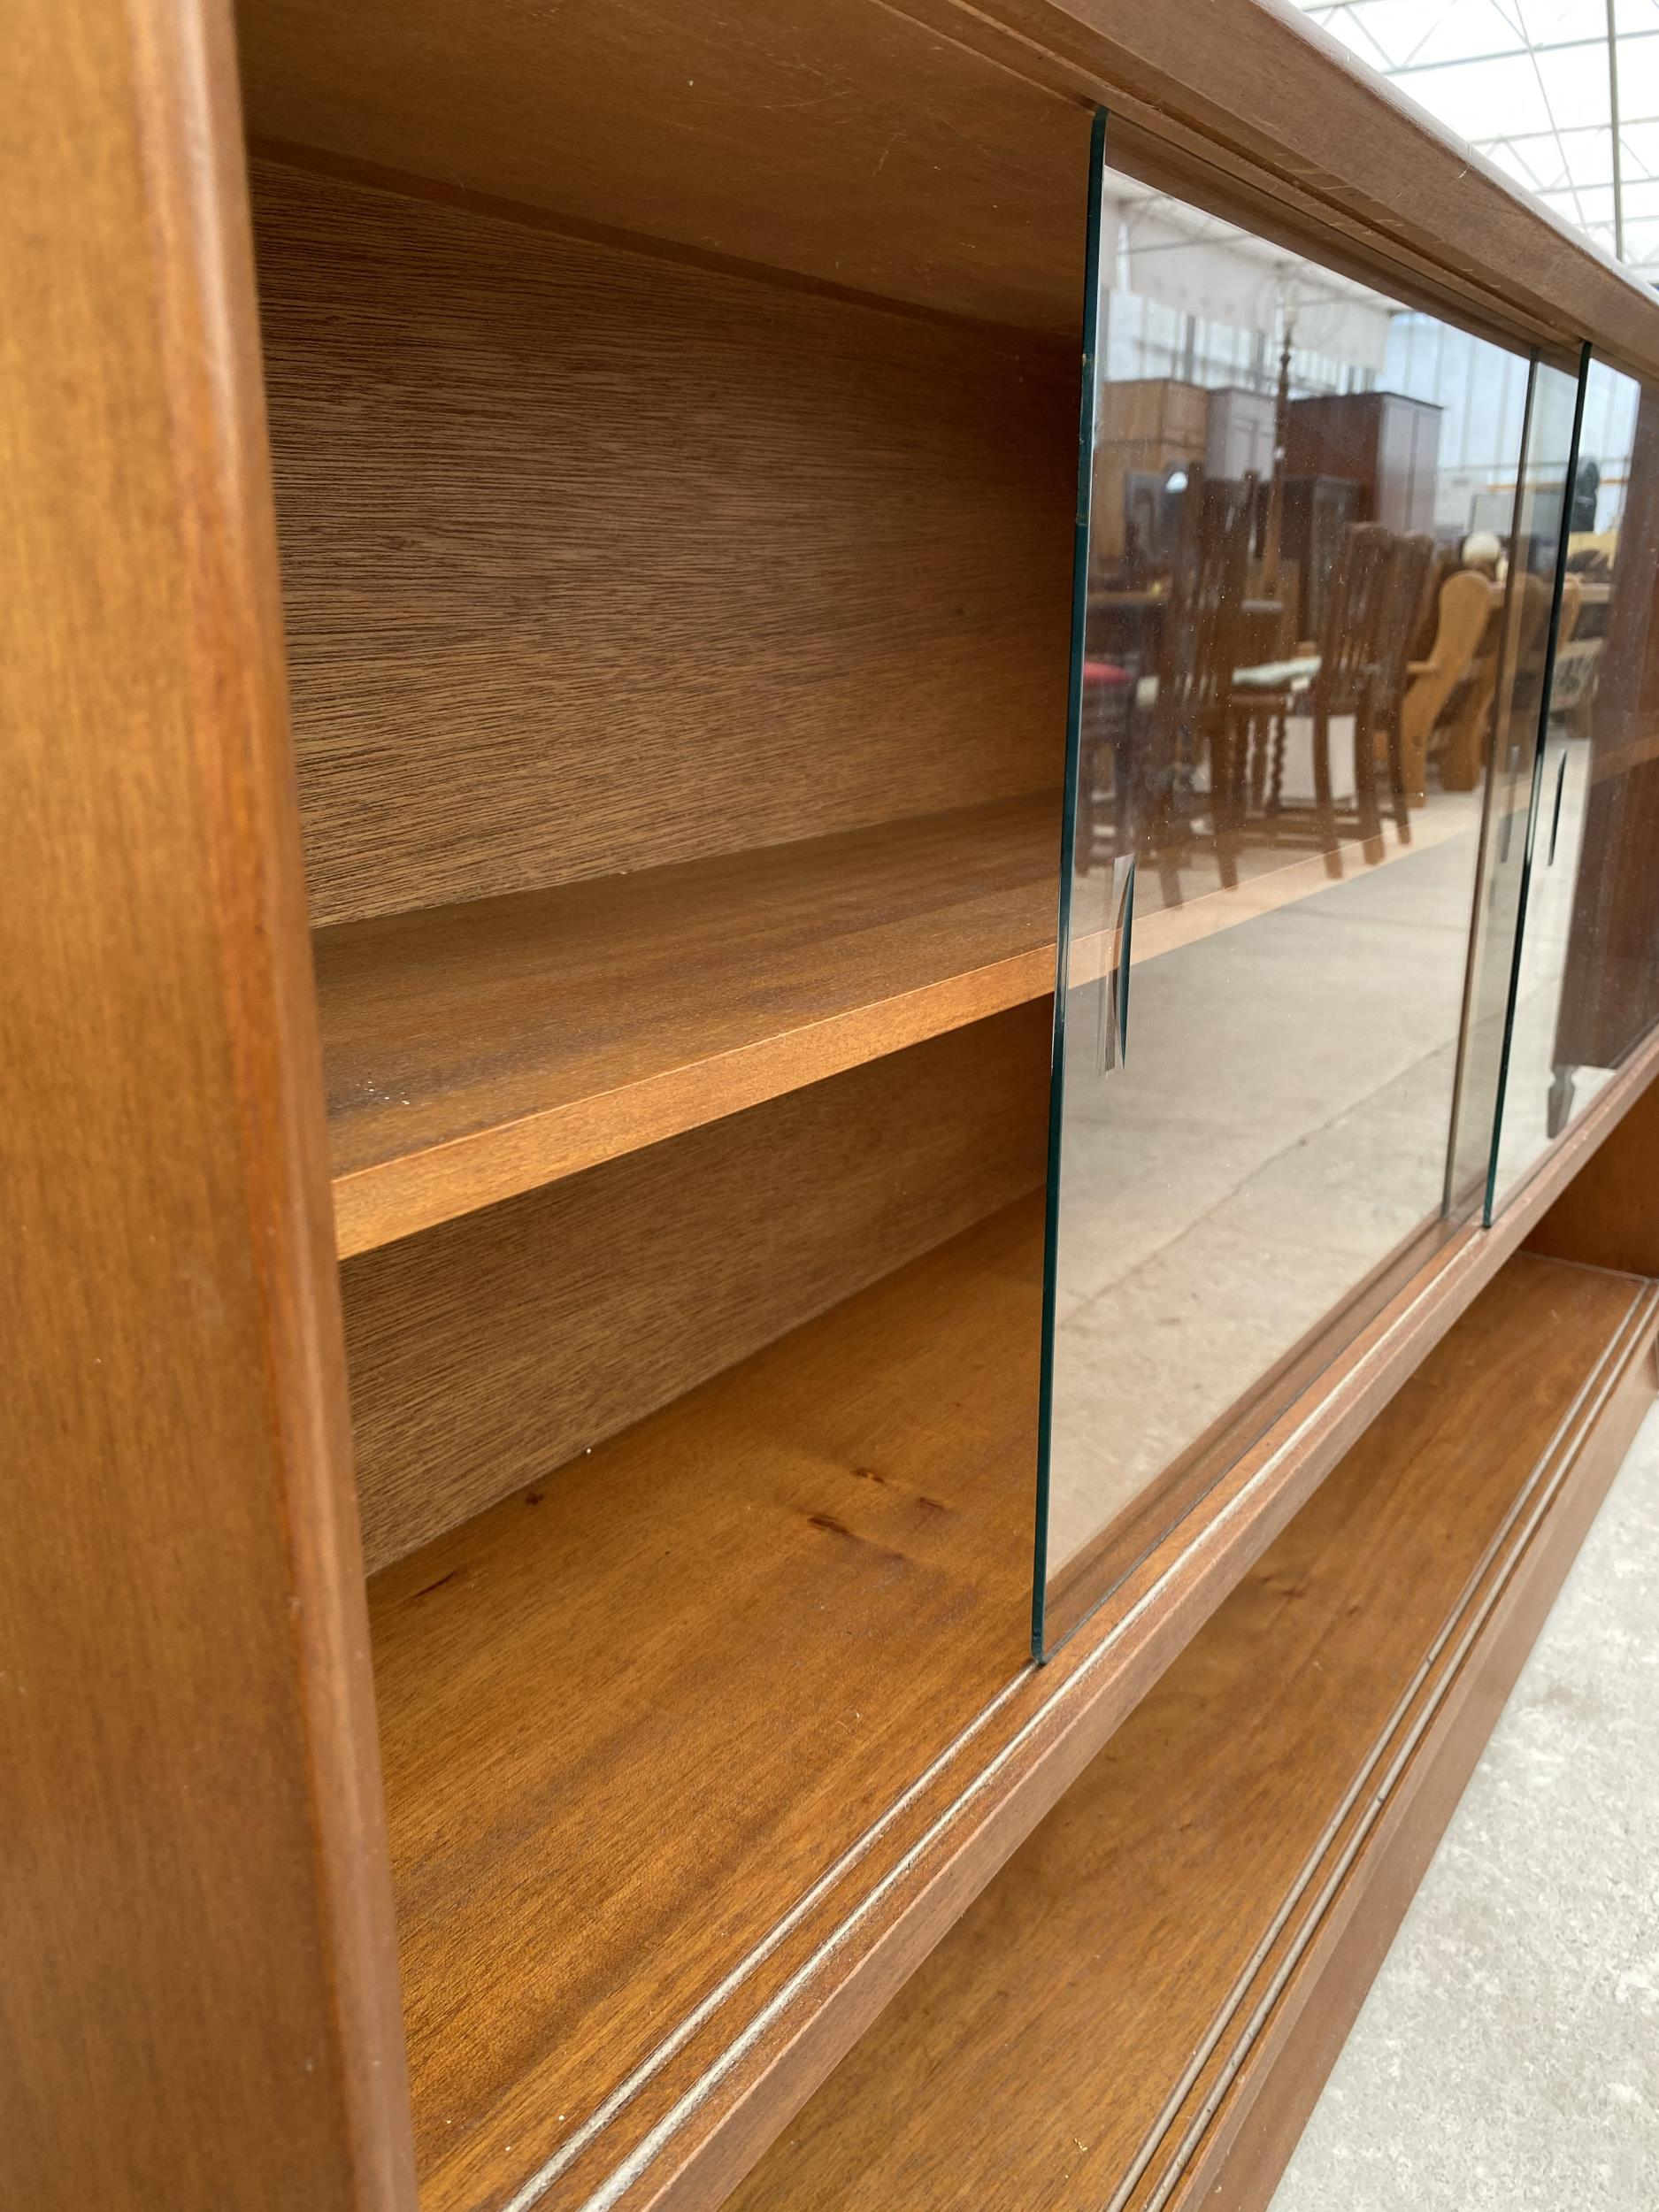 """A RETRO TEAK HERBENT AND GIBBS GLASS FRAMED BOOKCASE 60"""" WIDE - Image 5 of 6"""